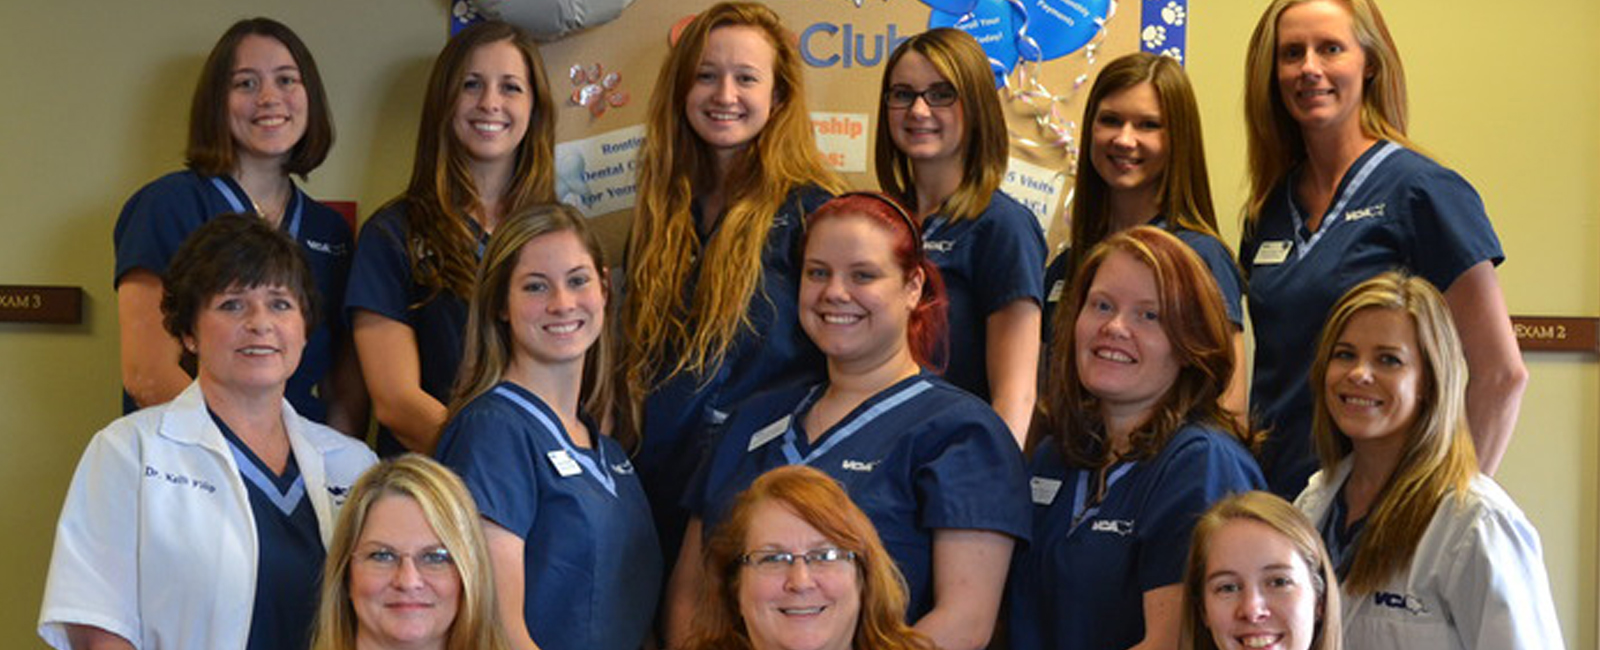 Homepage Team Picture of  VCA Tomball Animal Hospital